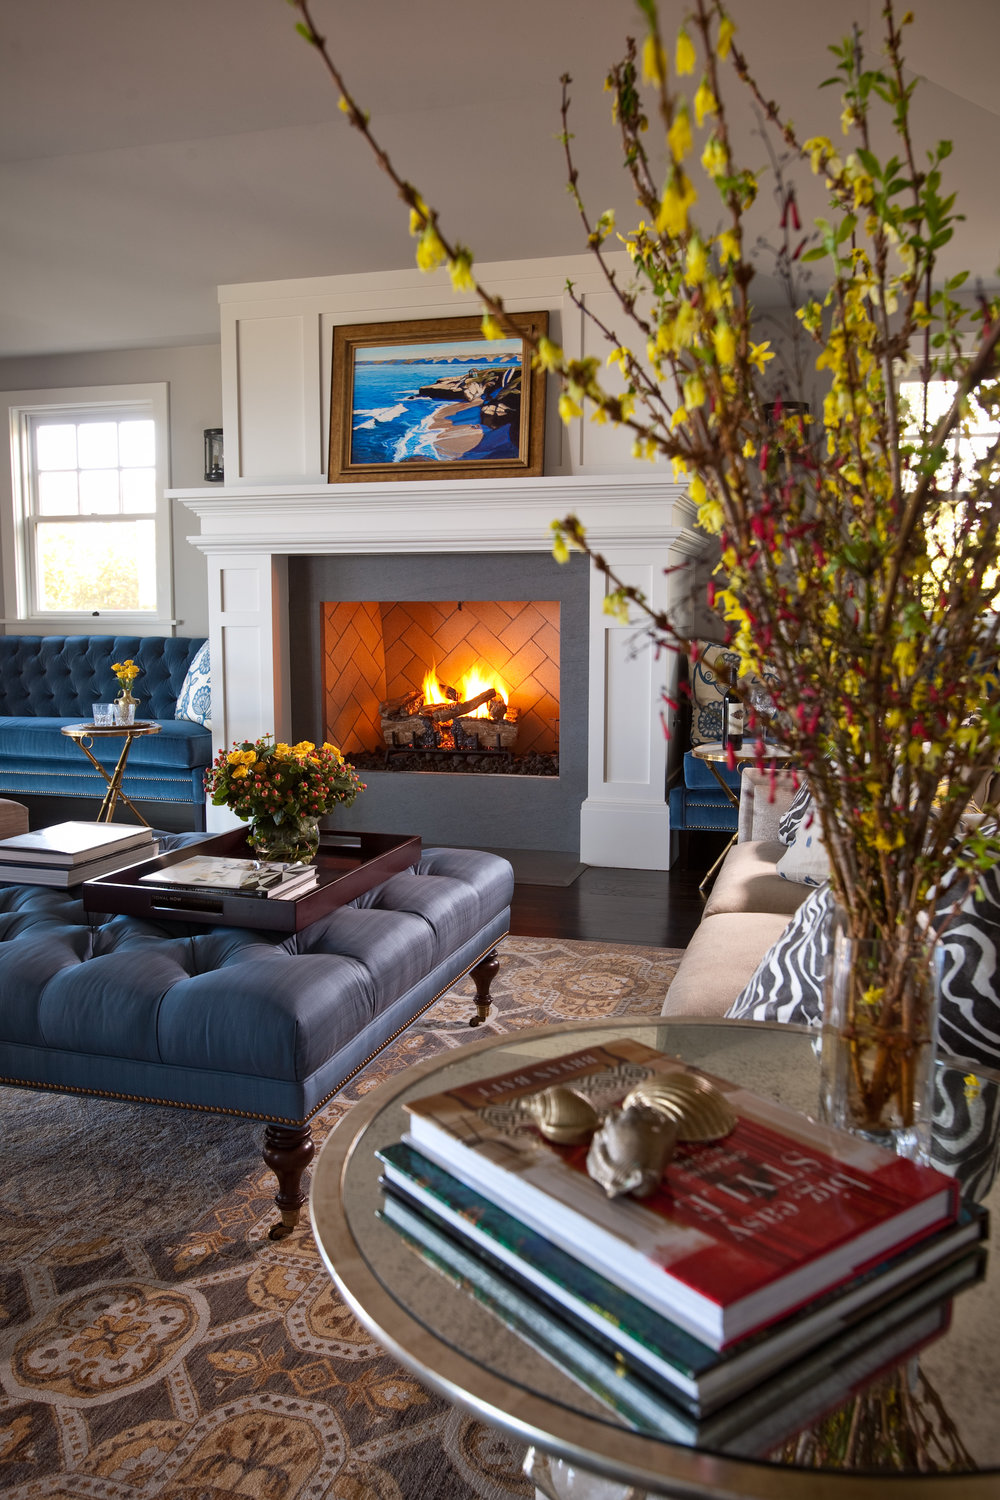 With a warm fire and a view of the Pacific Ocean, this might be the best seat in the house.